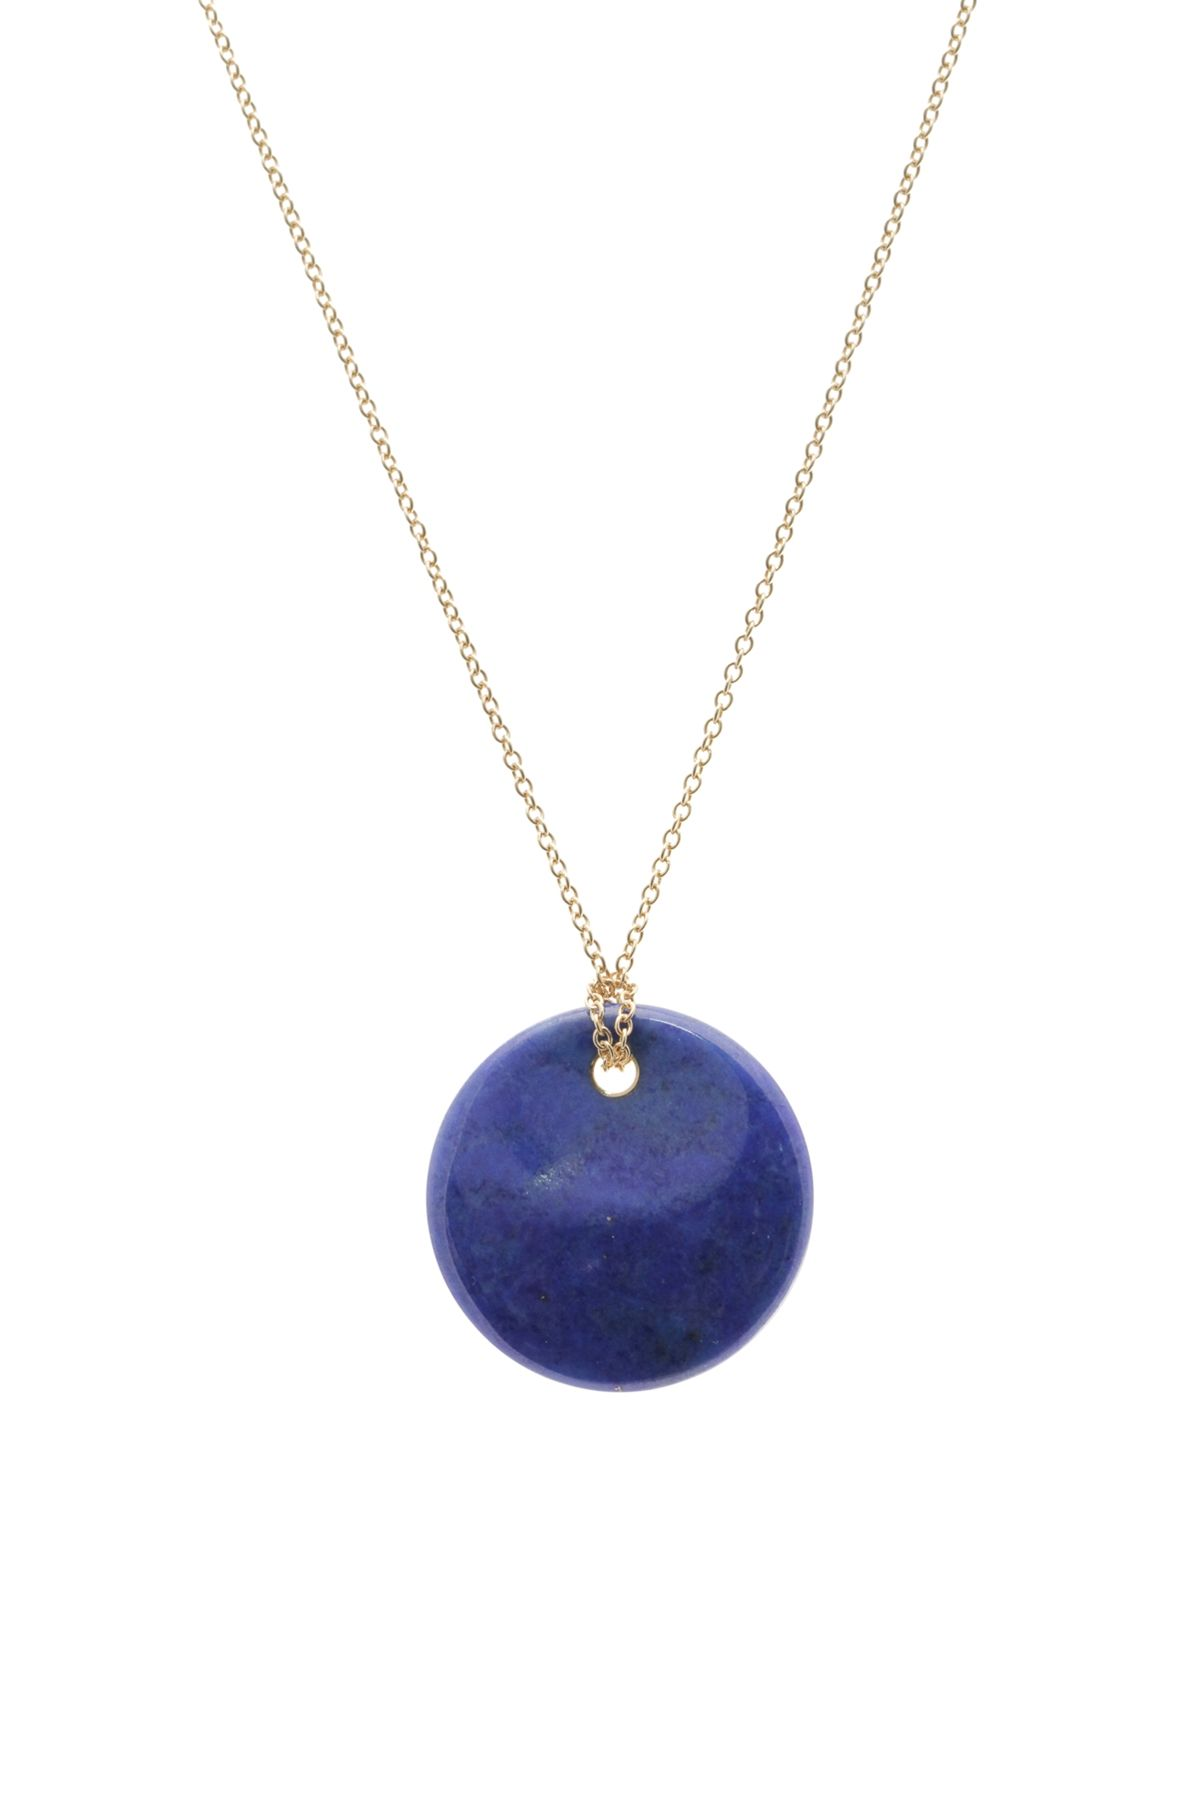 d3ce27caa1b9 Tiffany   Co. 18K Gold Peretti Lapis Lazuli Round Pendant Necklace ...